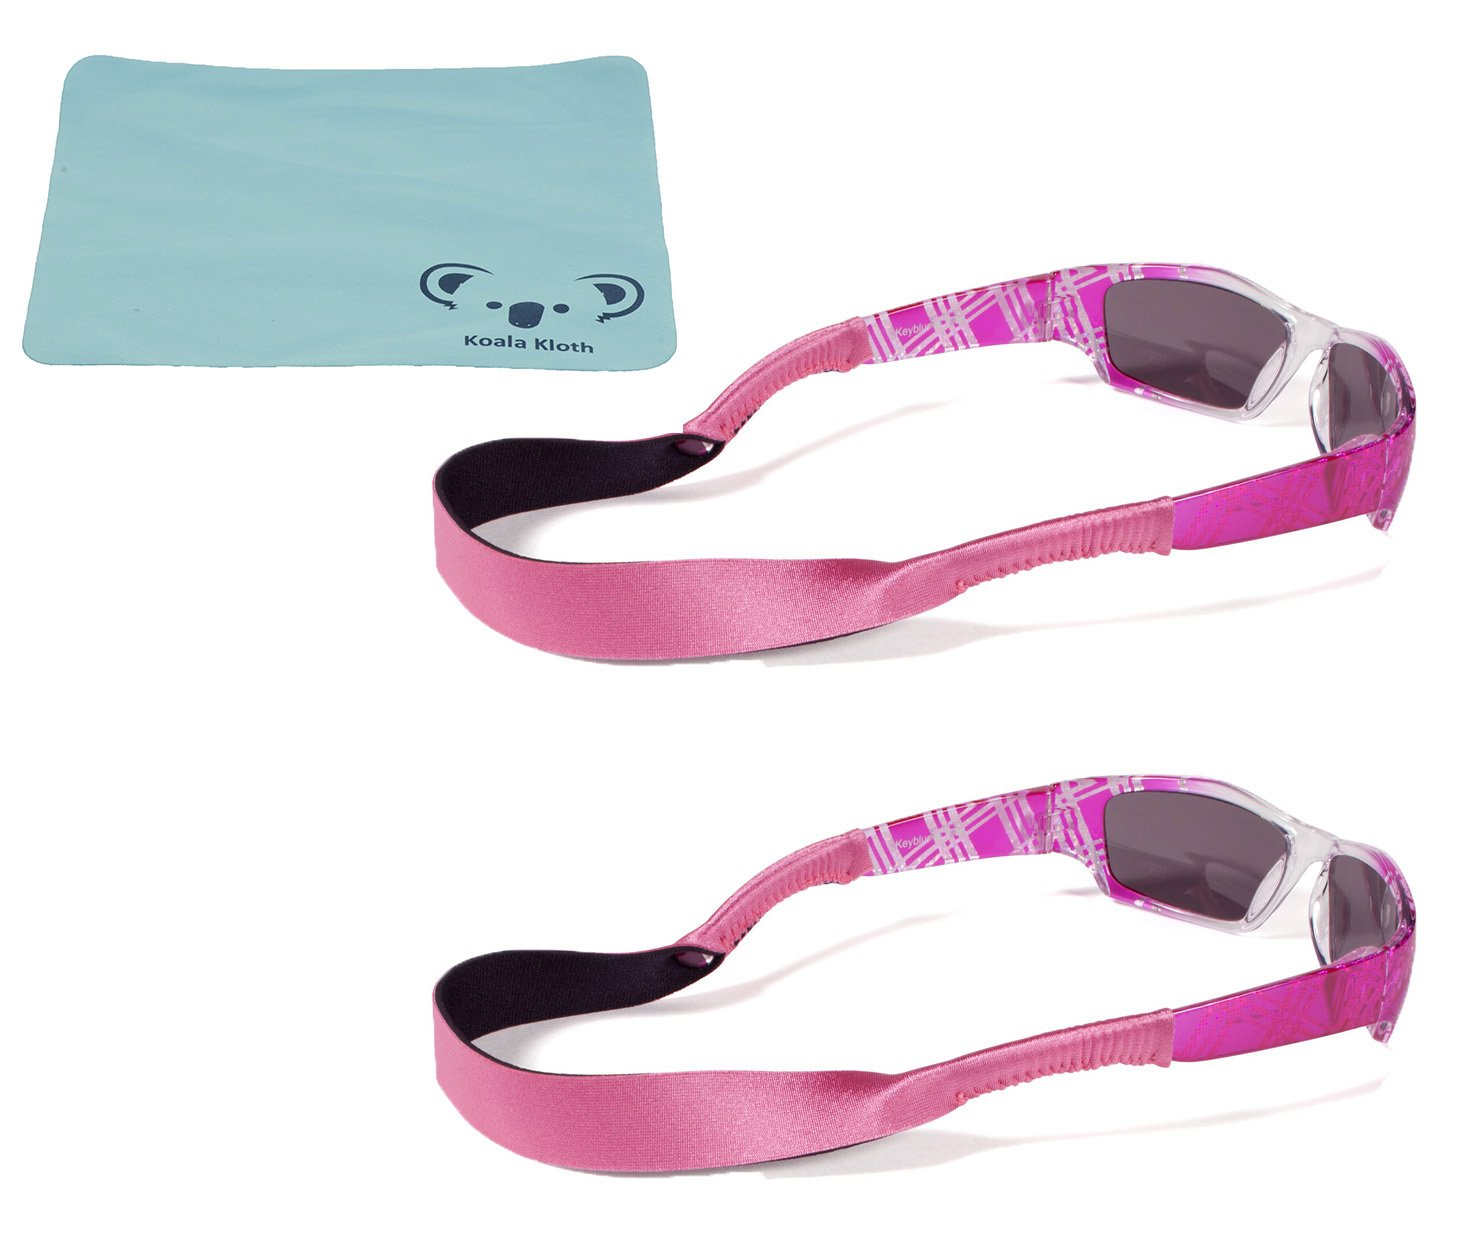 Croakies Kids Neoprene Eyewear Retainer Childrens Glasses Strap | Eyeglass and Sunglass Holder | Boys and Girls Sports Use | 2pk Bundle + Cloth, Pink